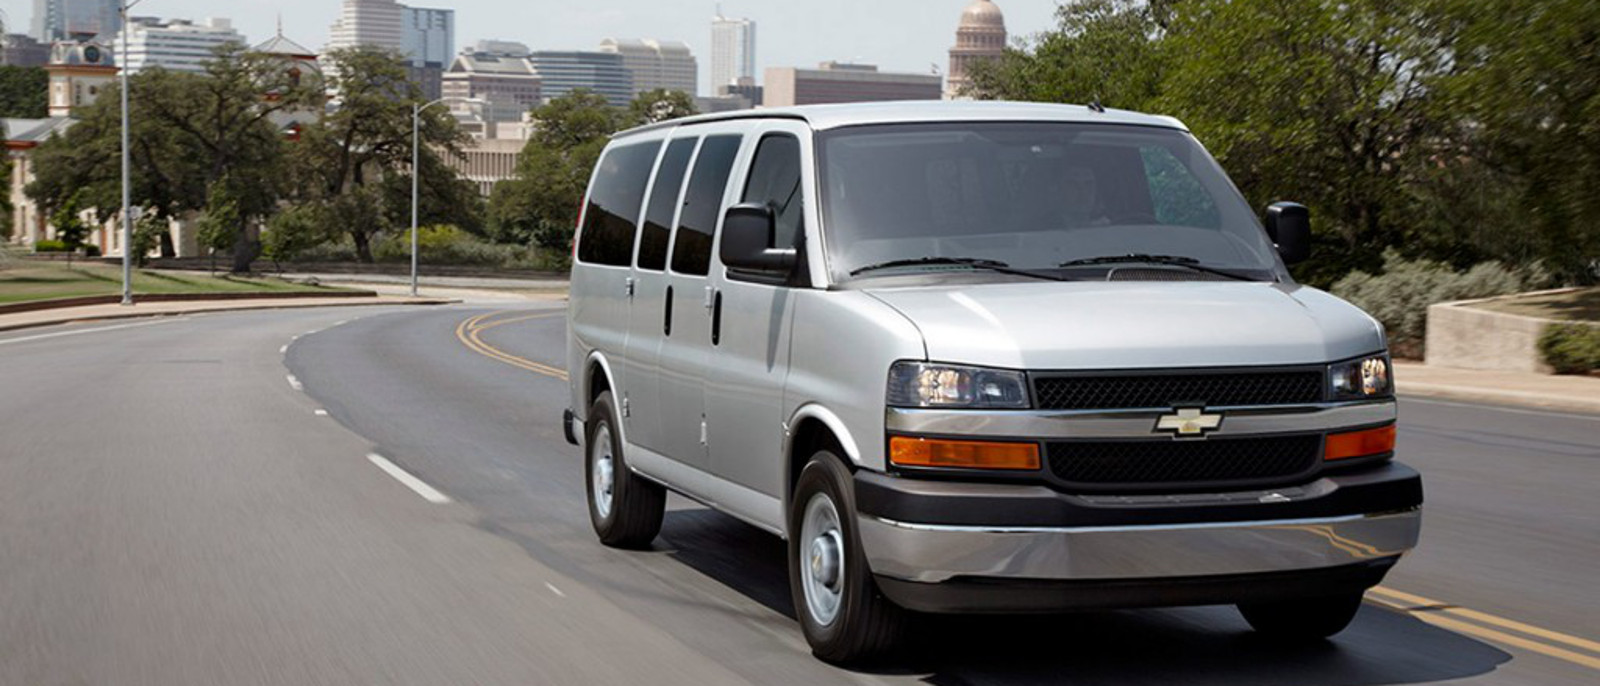 Beware The Van, Man: Chevy Will Offer 401hp 6.6L V8 In 2021 Express – Yes, Factory Stock 400hp Vans Are A Thing Now